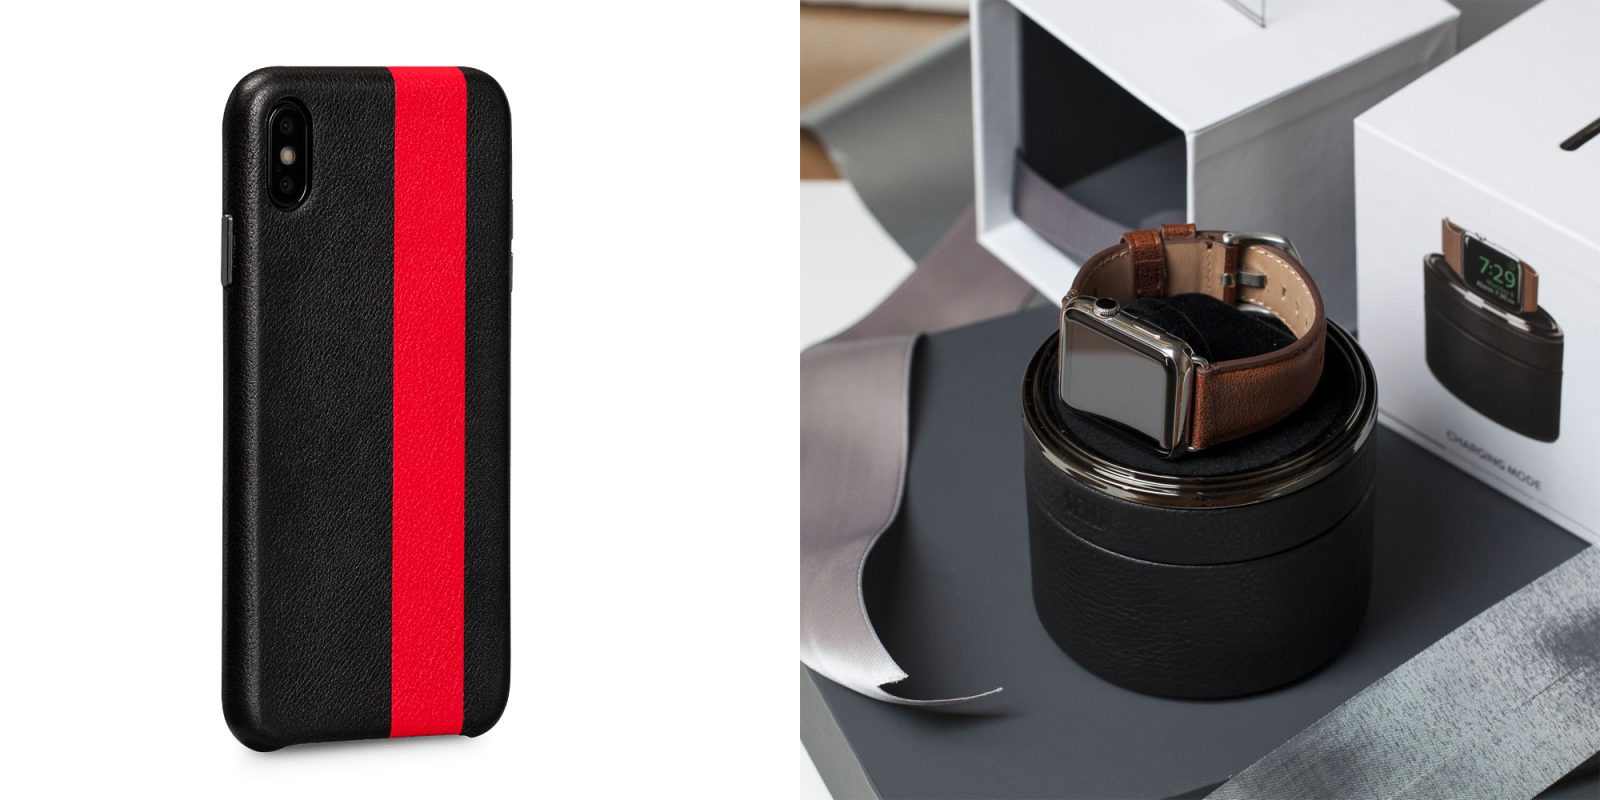 Targus is offering 15% or more off accessories for Apple Watch, iPhone, more